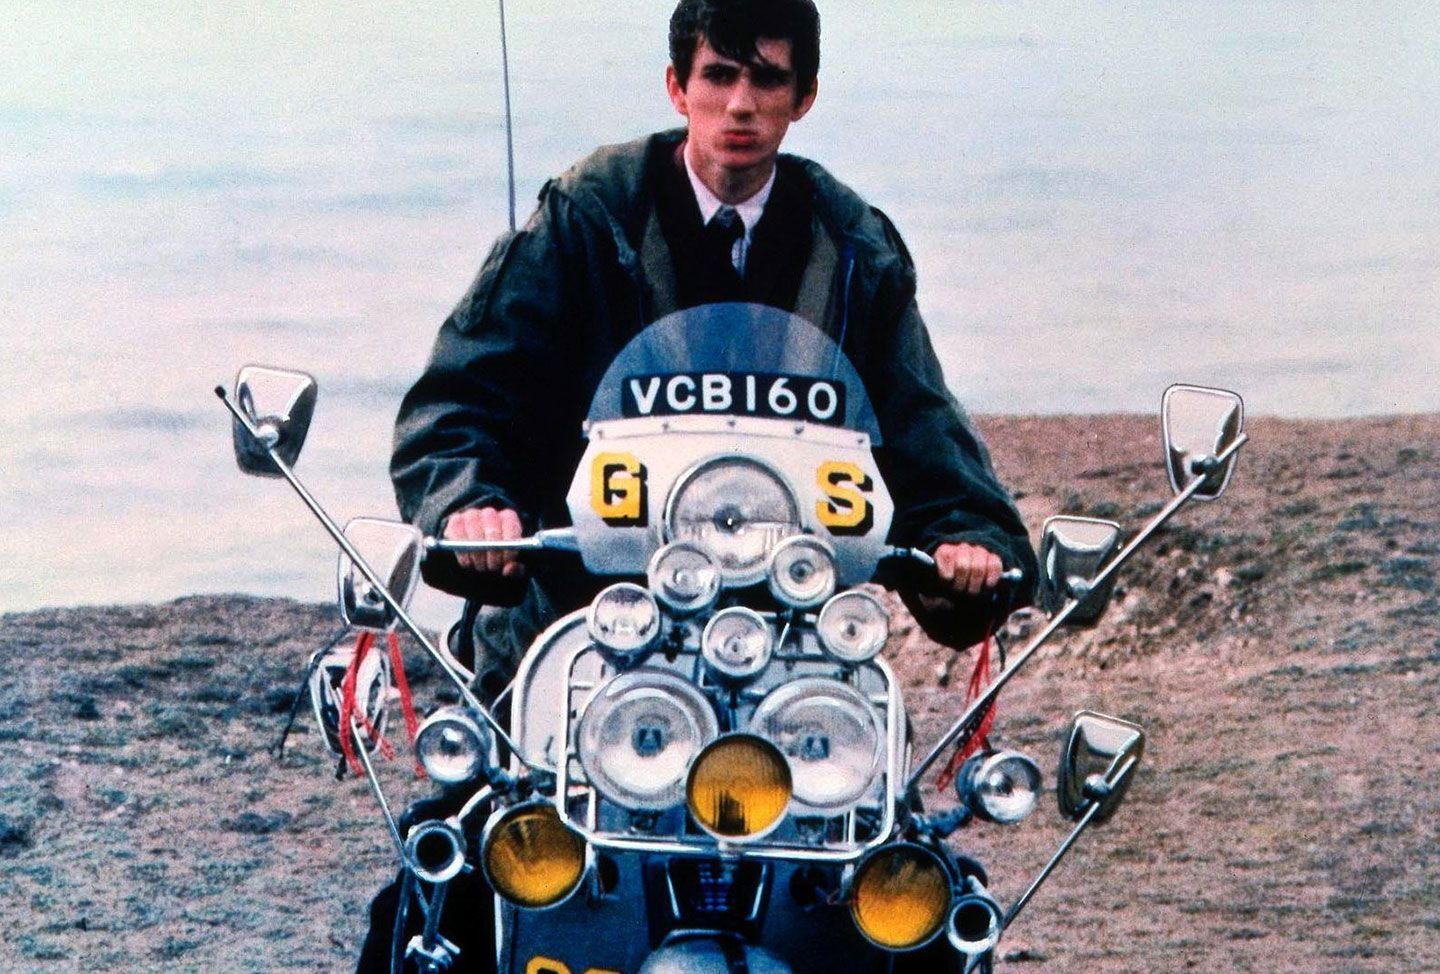 10 Great Motorcycle Movies for a Rainy Day